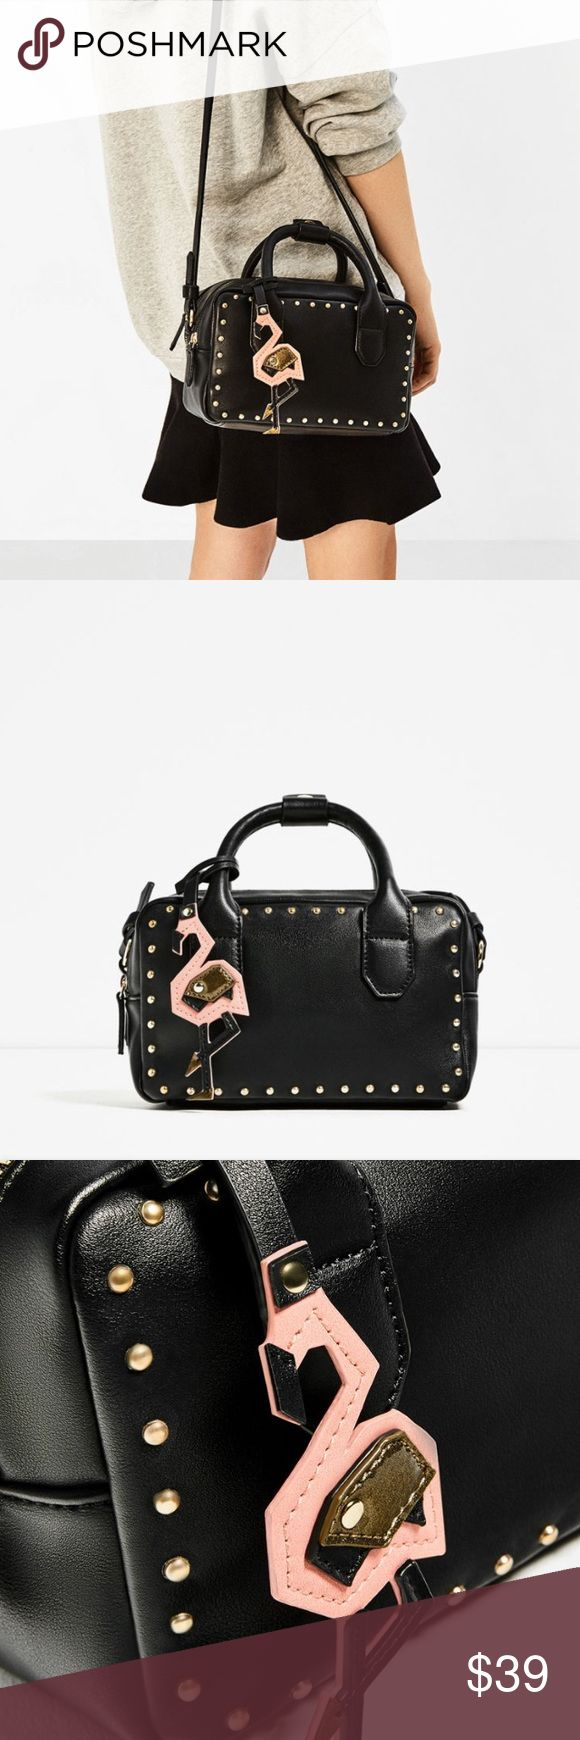 Studdded Mini Bowling Bag - ZARA Black Mini Bowling Bag. Hook & Studs details. Adjustable and detachable shoulder strap. NWT.  🚫SOLD OUT in stores and online 🚫 Zara Bags Crossbody Bags